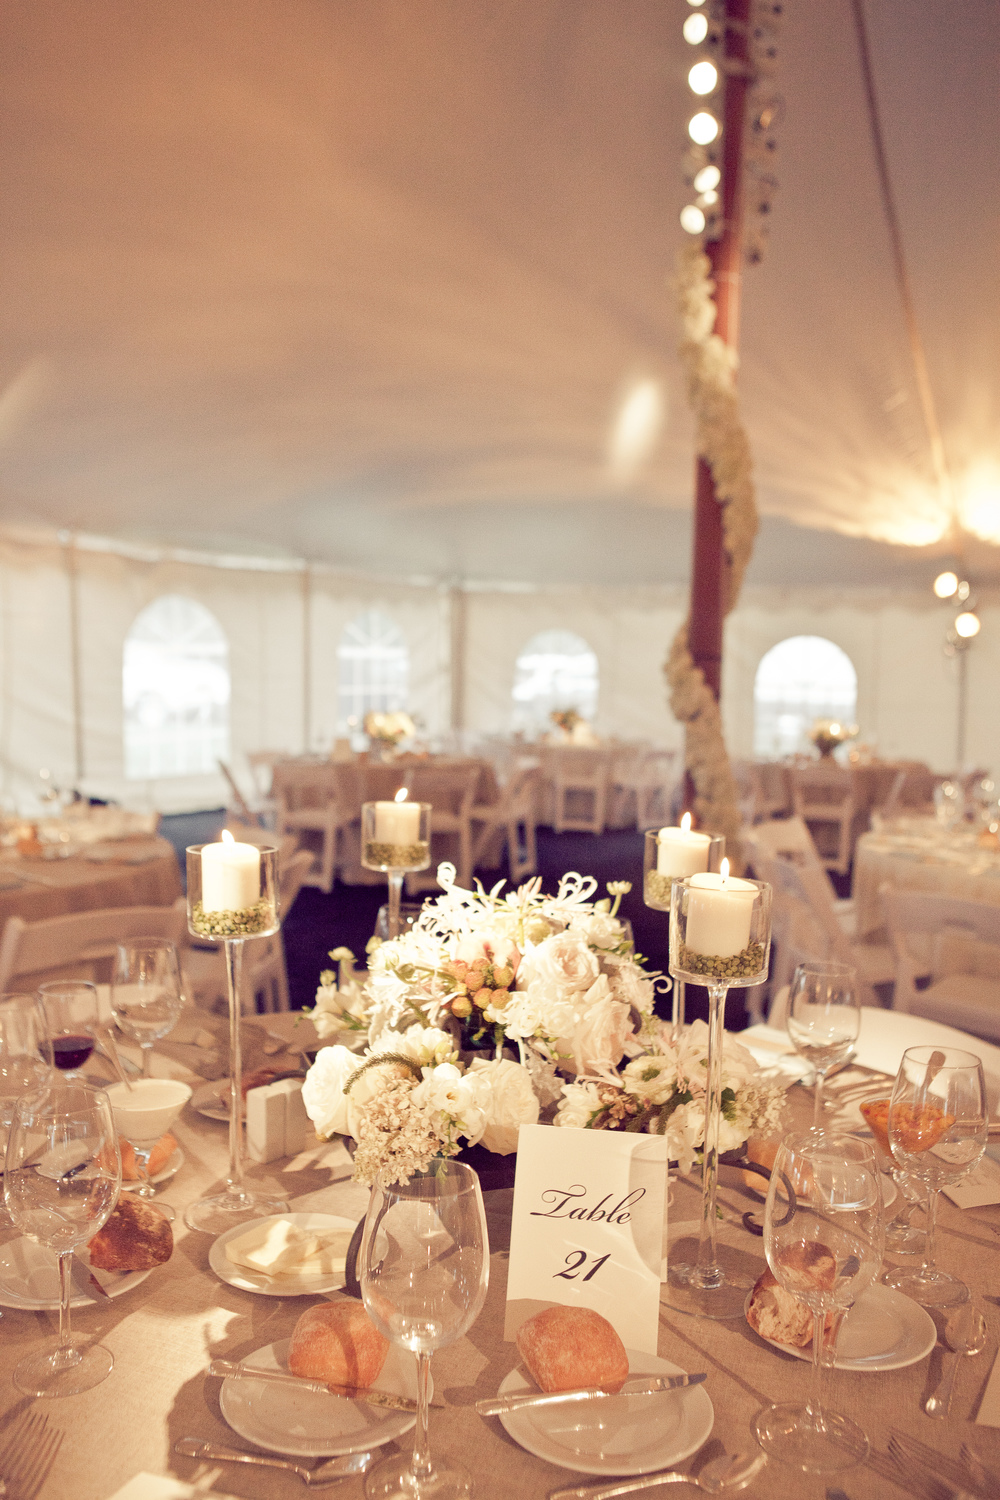 80x100 white wedding tent